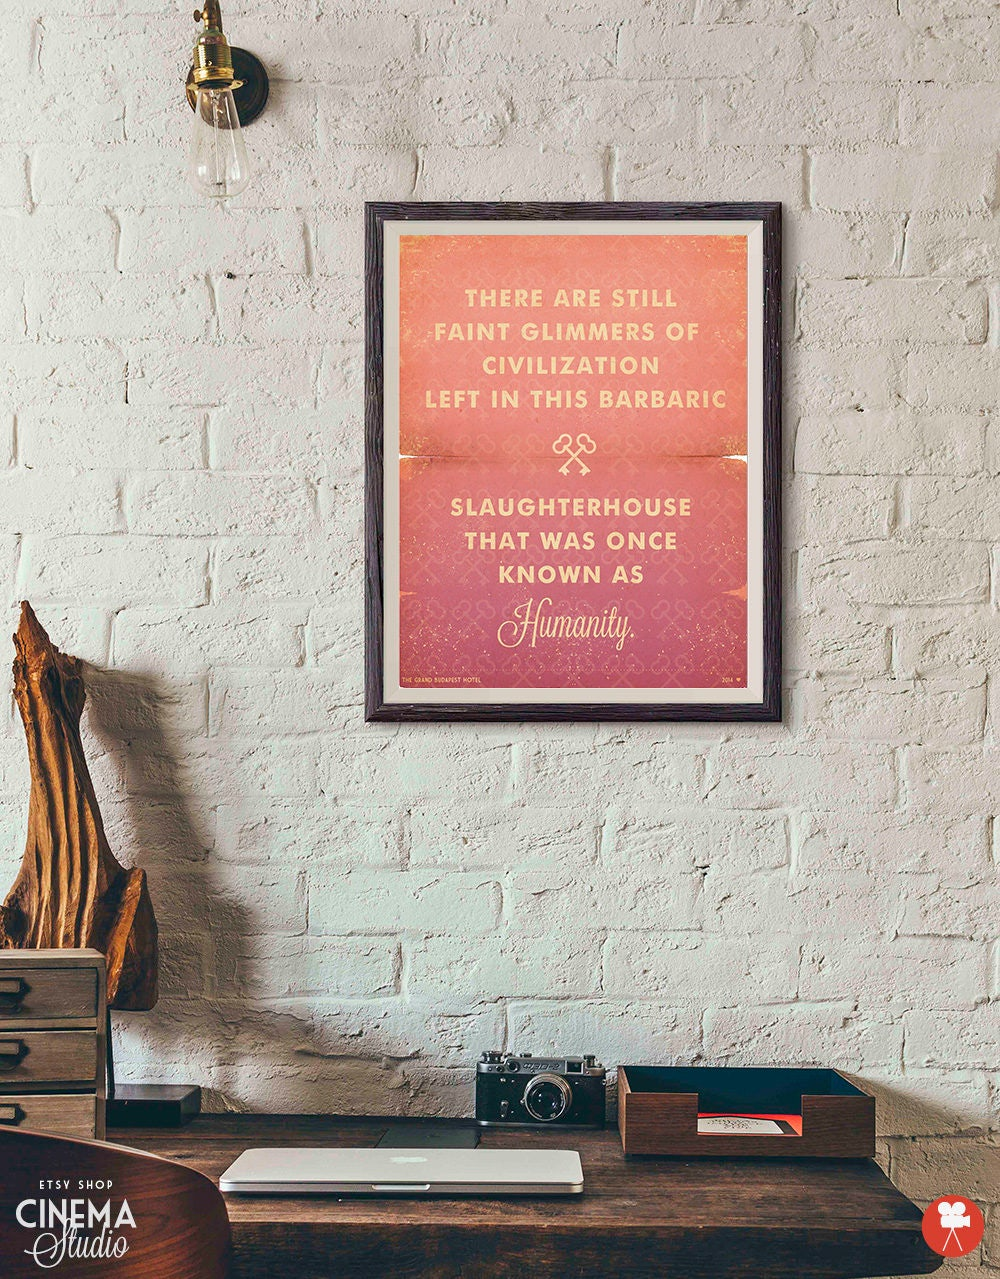 Grand Budapest Hotel Quotes 20% Off The Grand Budapest Hotel Poster Print Type Wes